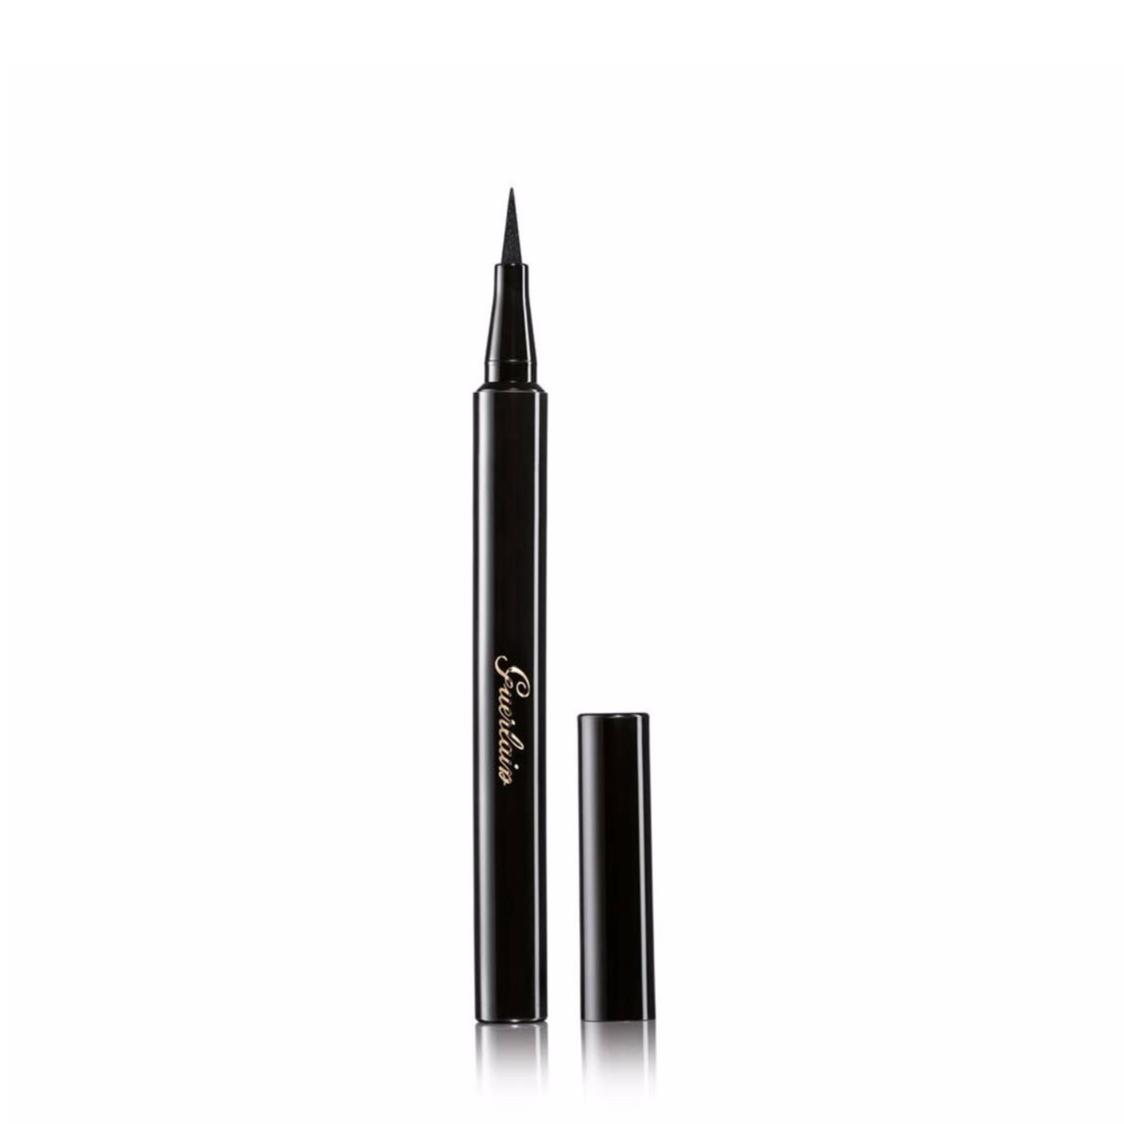 LArt Du Trait Precision Felt Eyeliner Ultra Black